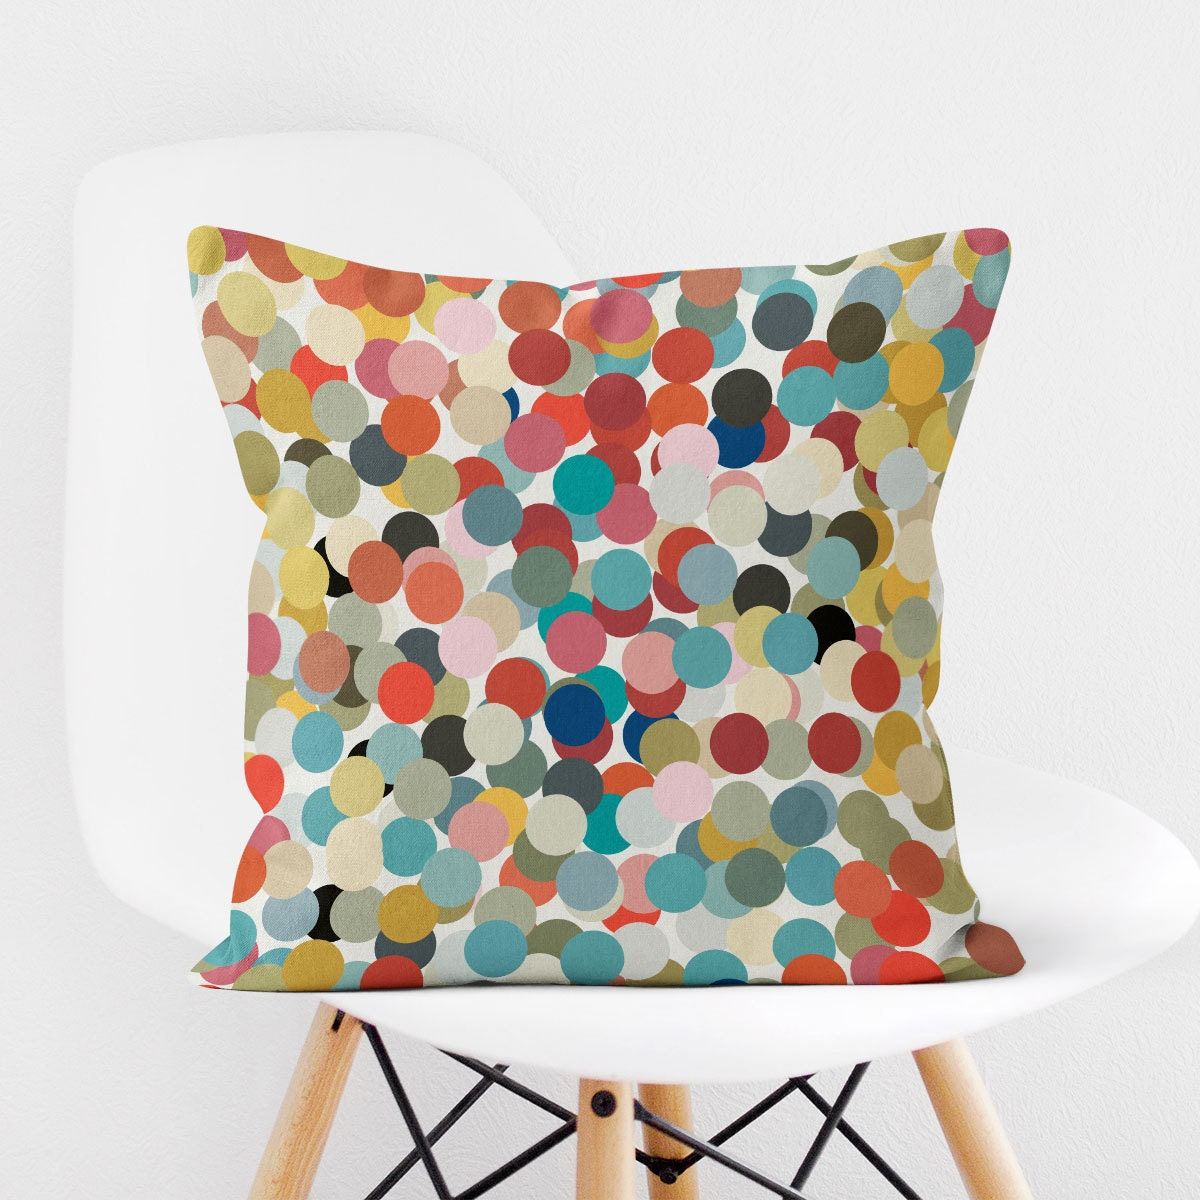 Decorative Pillows Covers 18x18 : Decorative Pillows For Couch Throw Pillow Covers 18x18